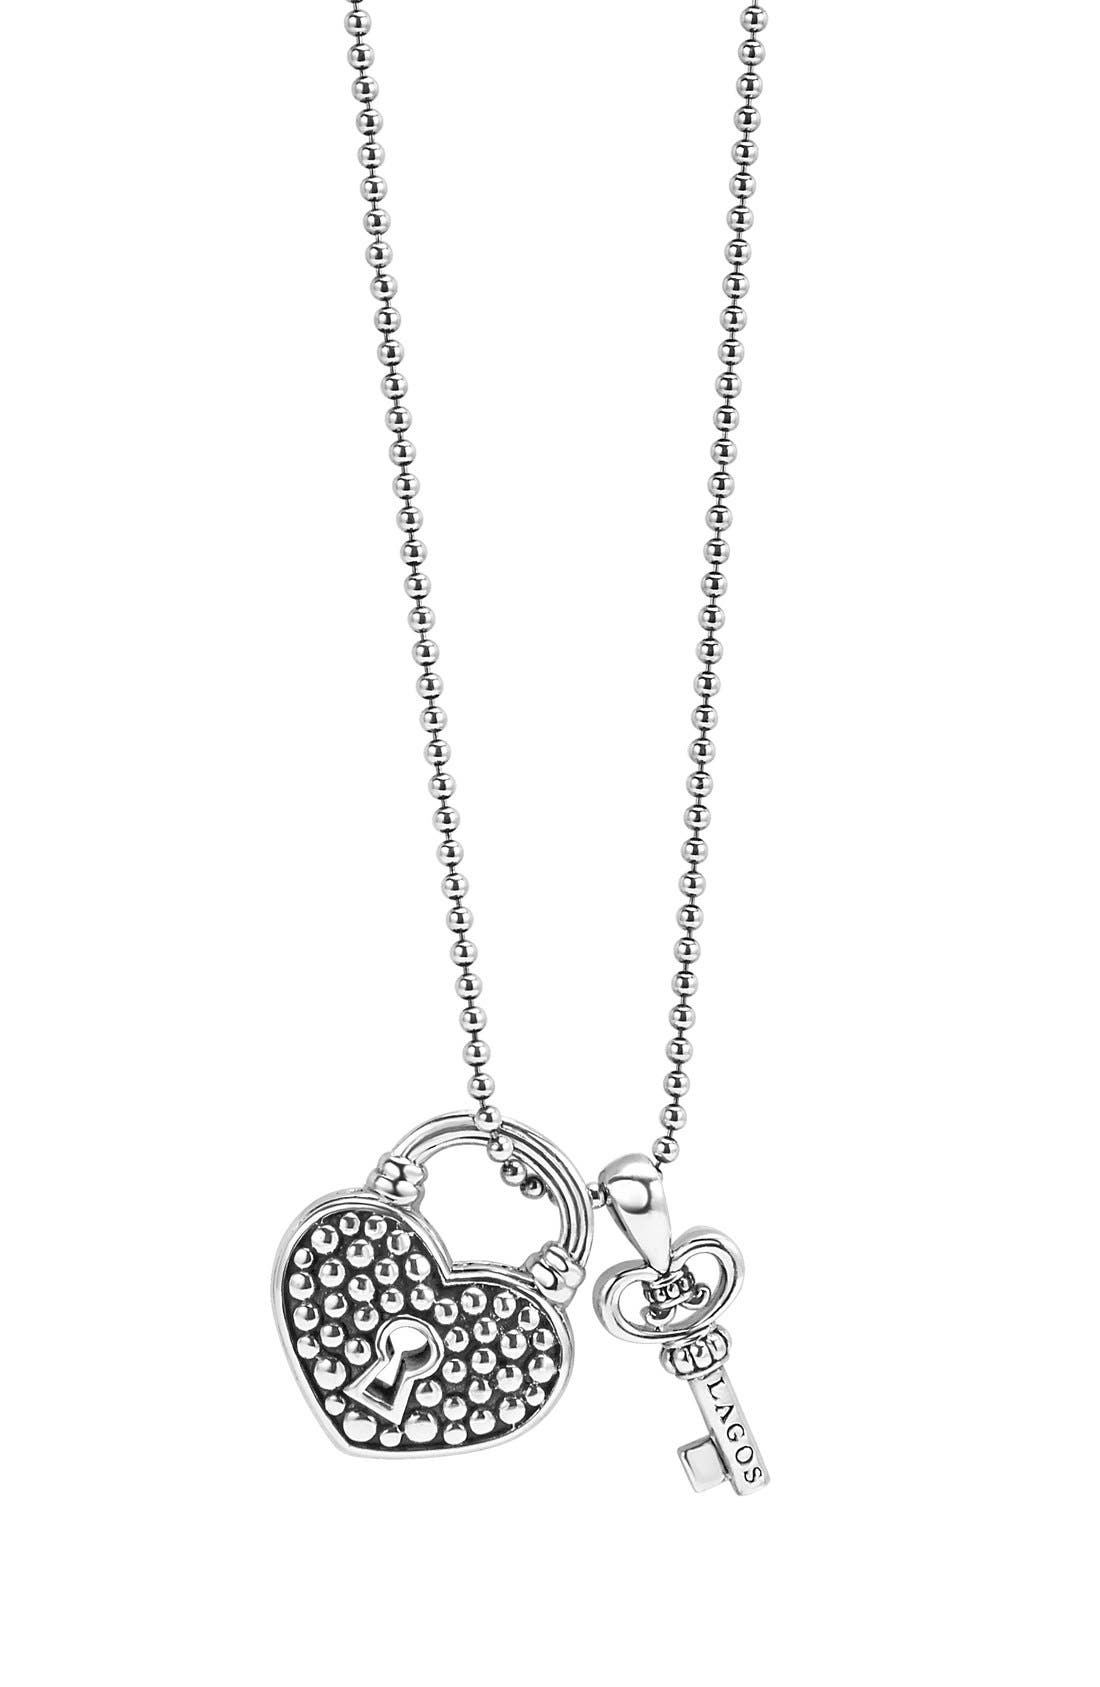 LAGOS 'Beloved' Heart Lock & Key Pendant Necklace